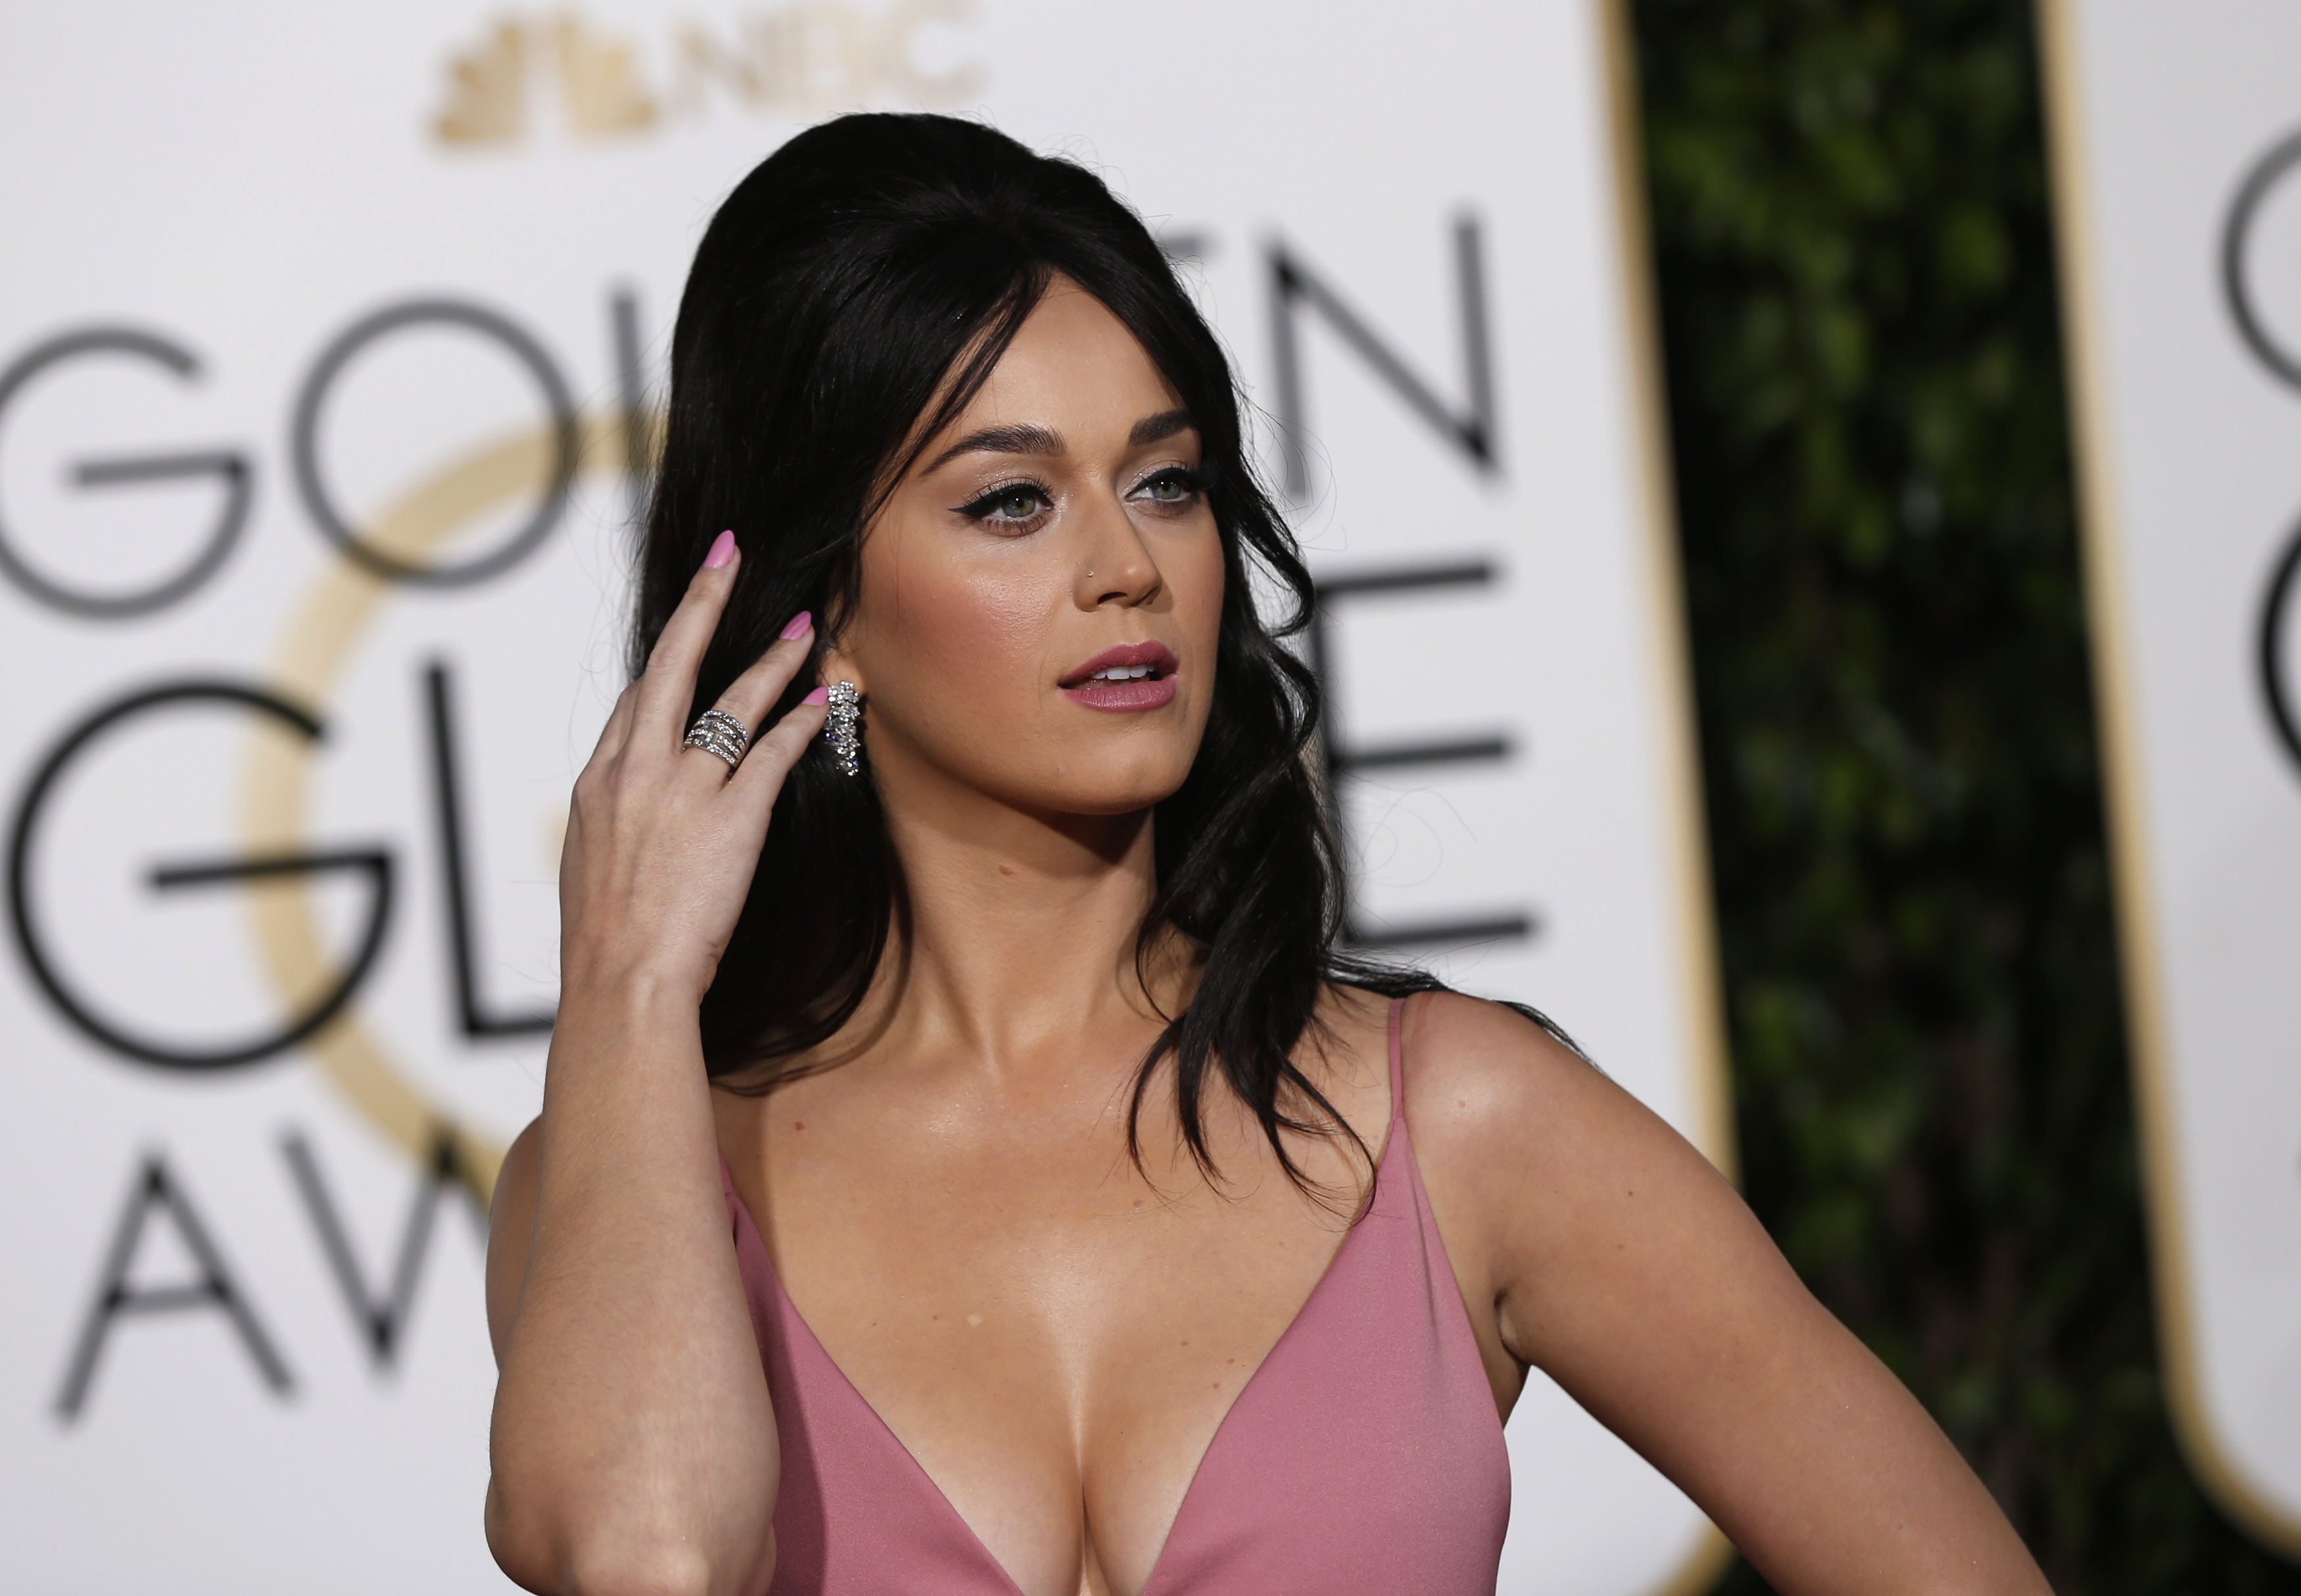 katy perry and orlando bloom show pda during romantic